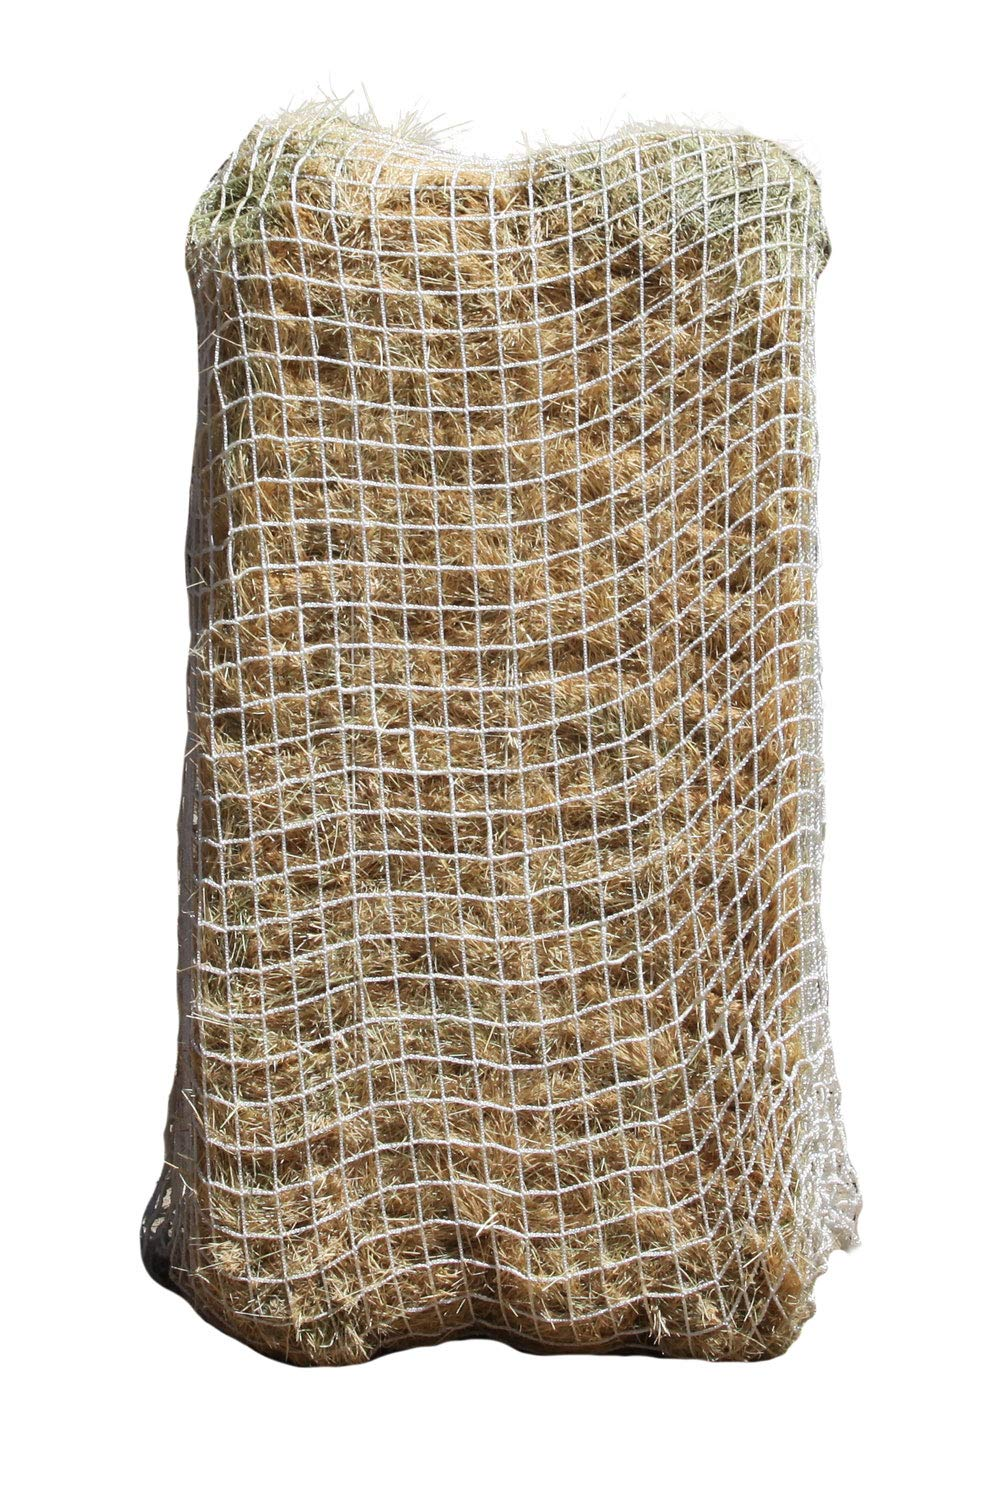 Freedom Feeder Mesh Net Full Bale Horse Feeder - Designed To Feed Horse For 7 Days - Reduce Horse Feeding Anxiety And Behavioral Issues by Freedom Feeder FF